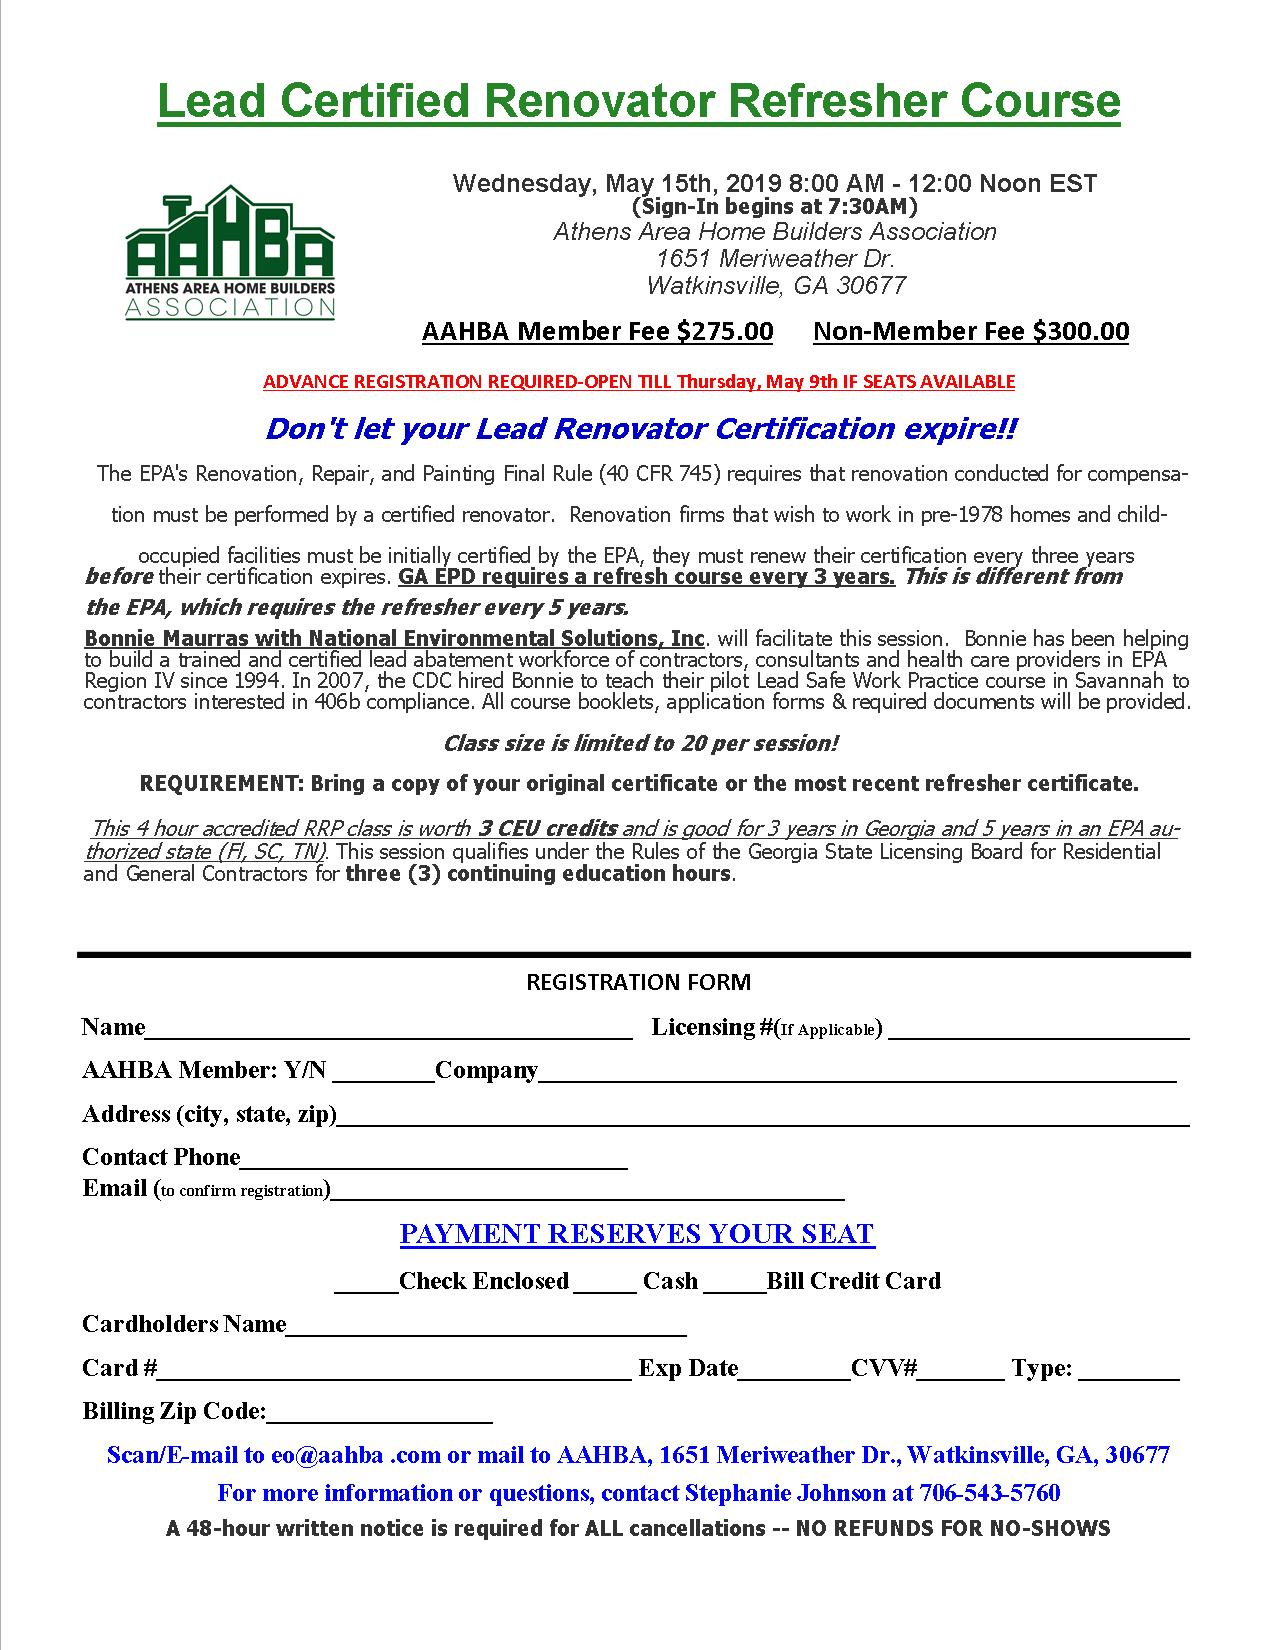 Lead RRP Refresher Course Registration Form